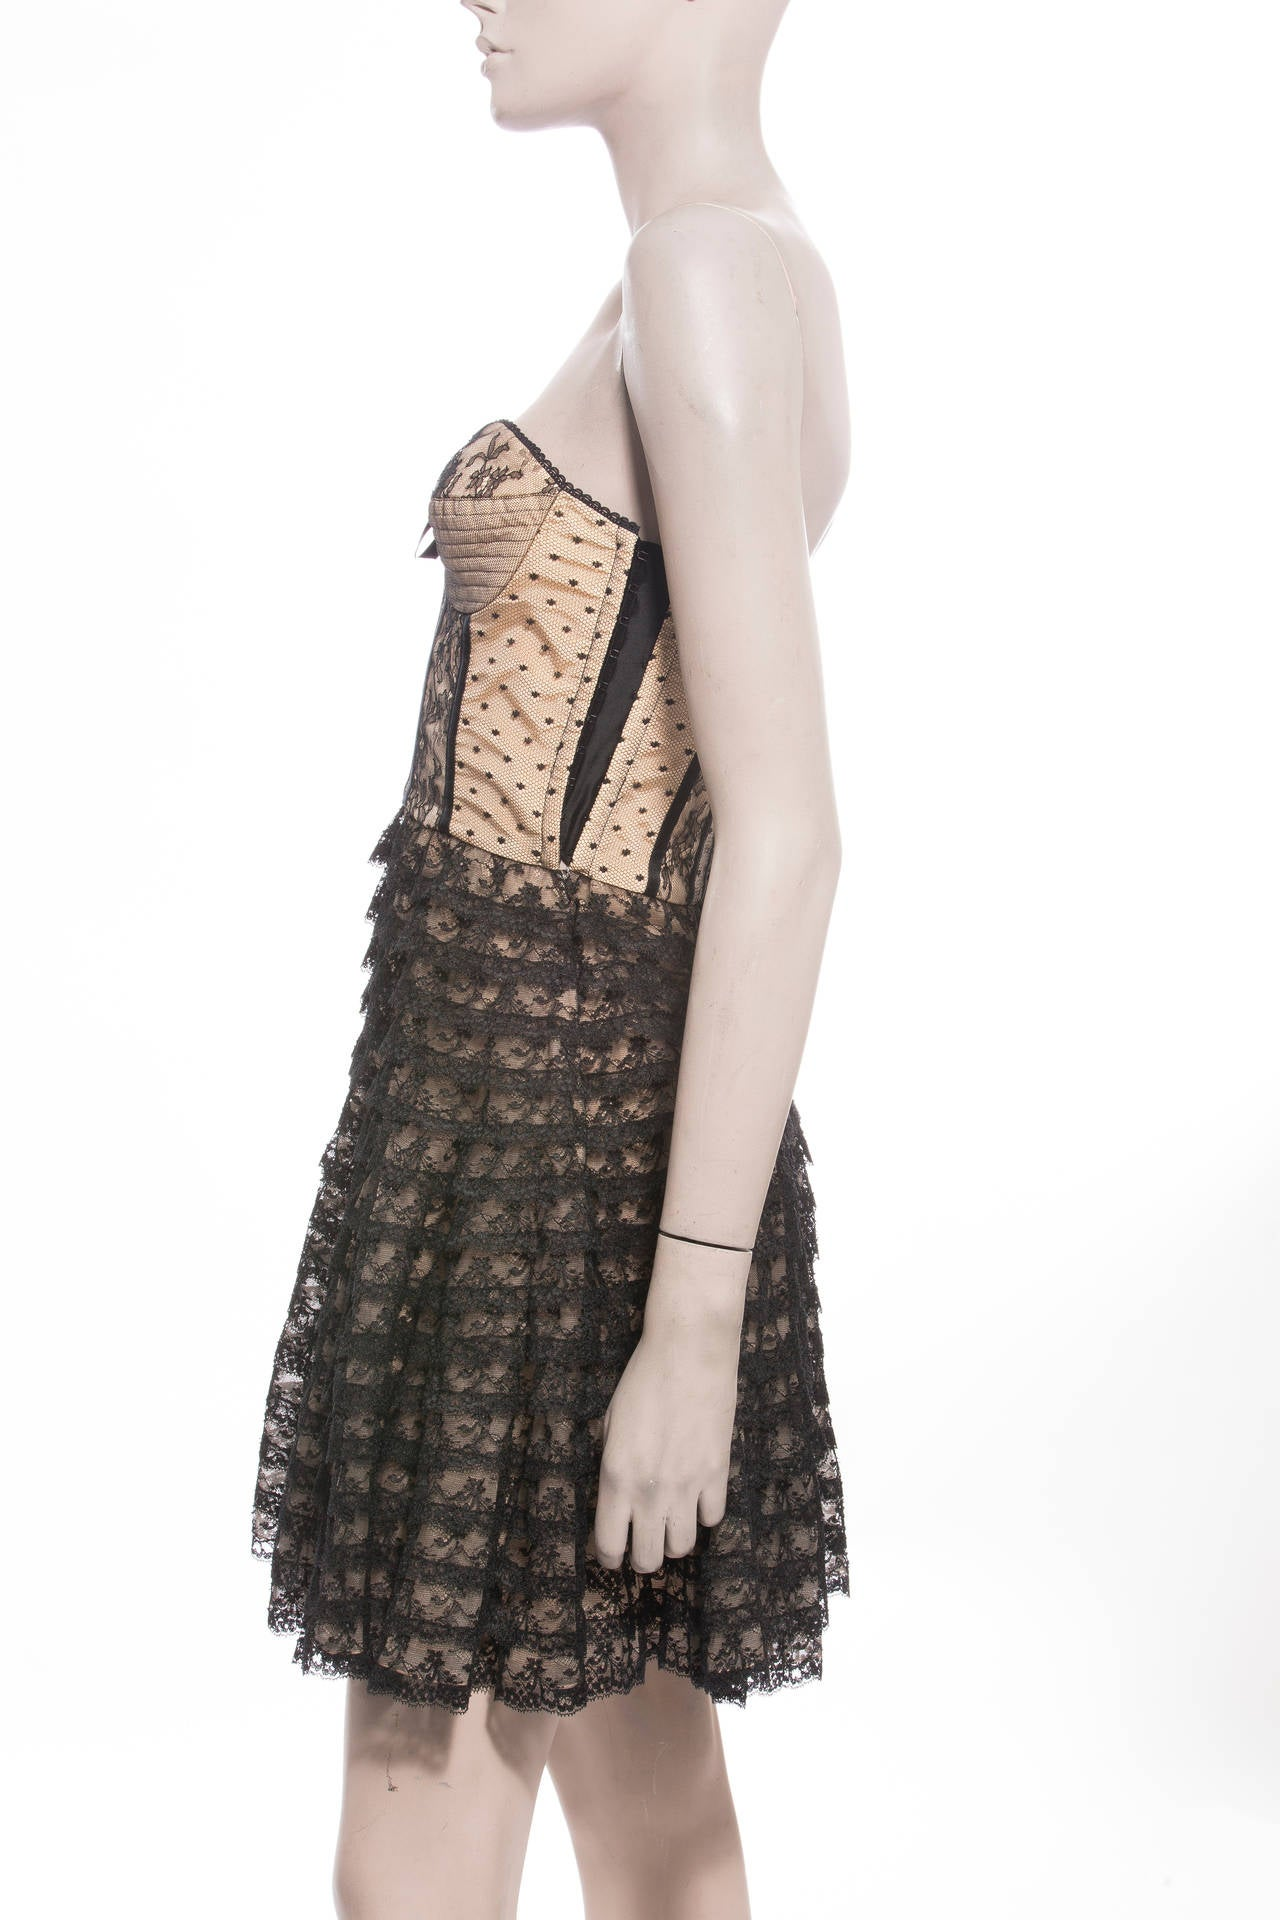 Christian Dior By John Galliano Strapless Lace Dress 6